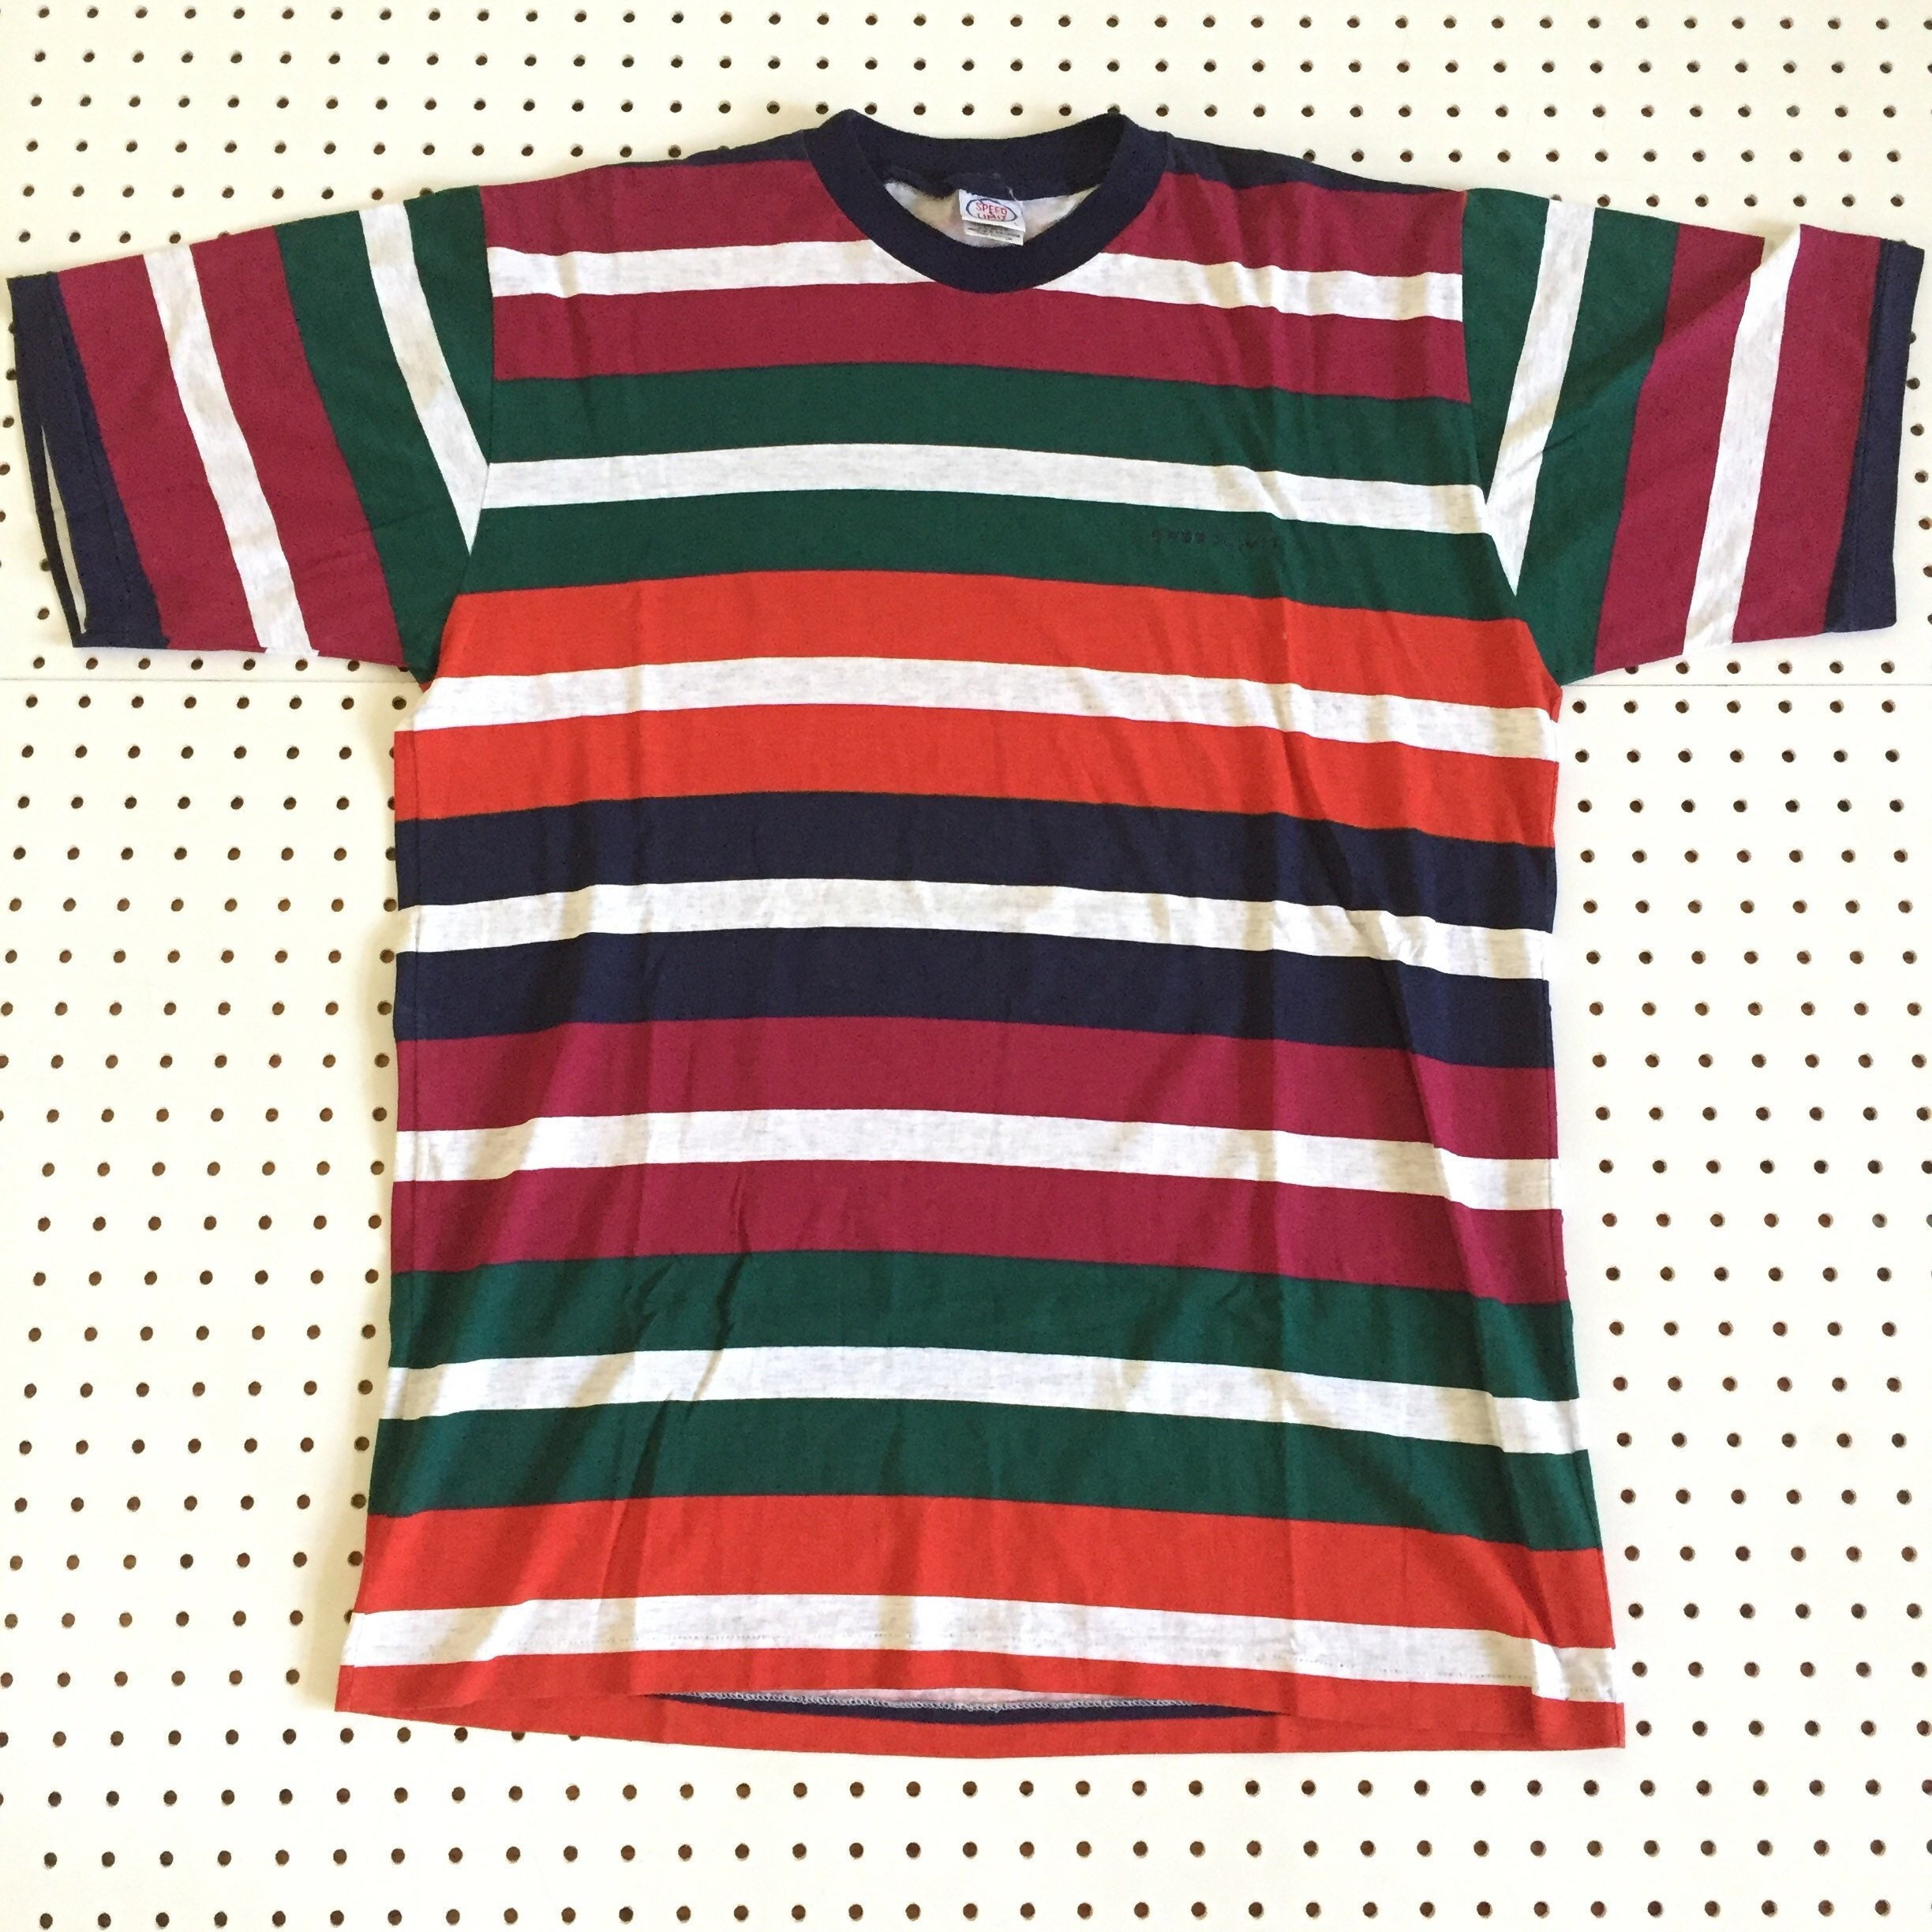 832f03e2c3 90s COLOR STRIPED t shirt by speed limit color block guess